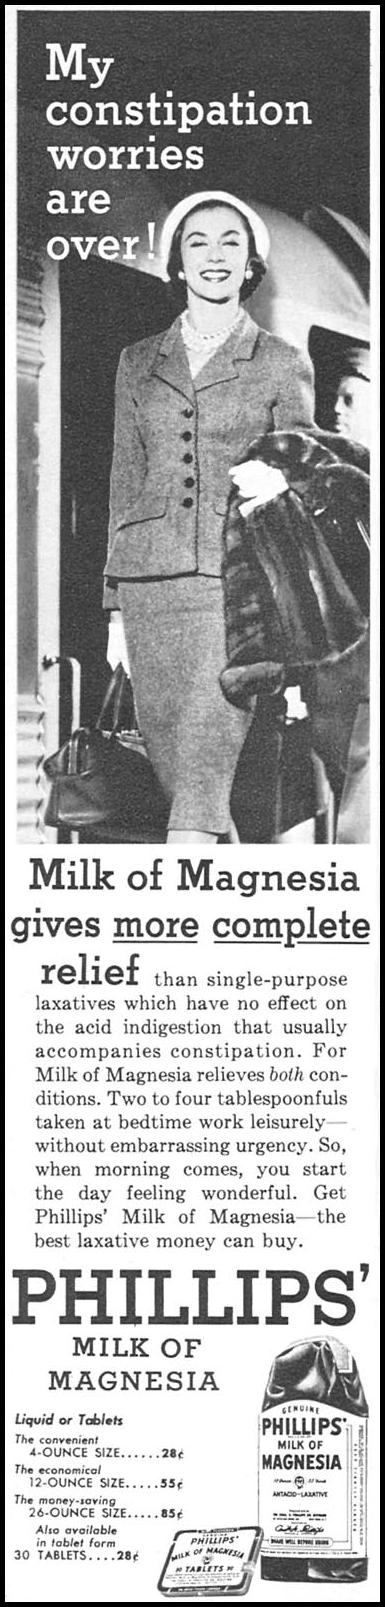 PHILLIPS' MILK OF MAGNESIA FAMILY CIRCLE 02/01/1956 p. 50